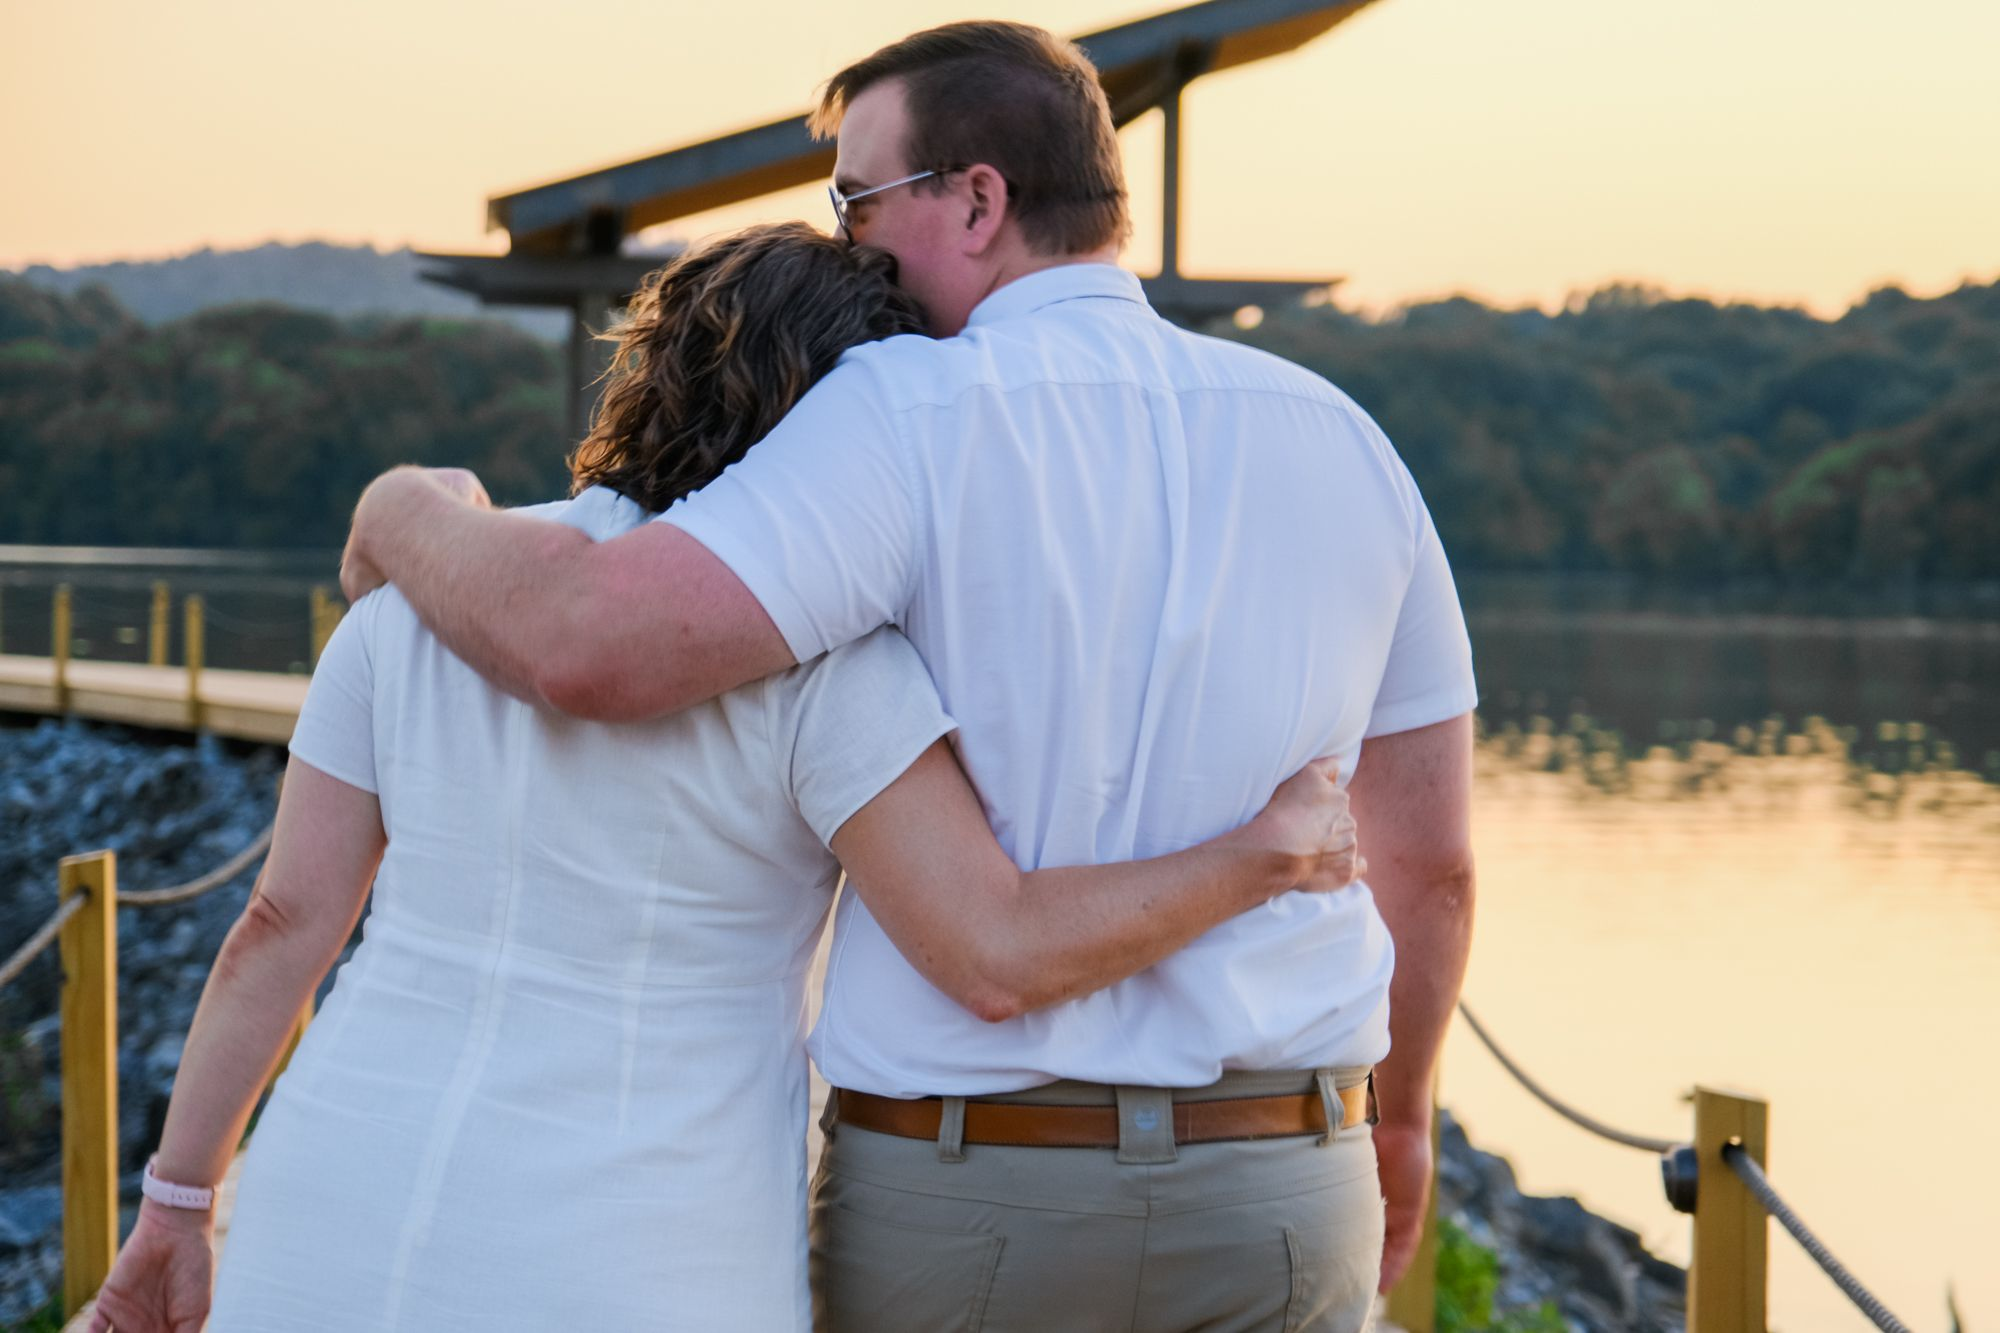 Weddings at Wildwood are Waterfront and Unforgettable